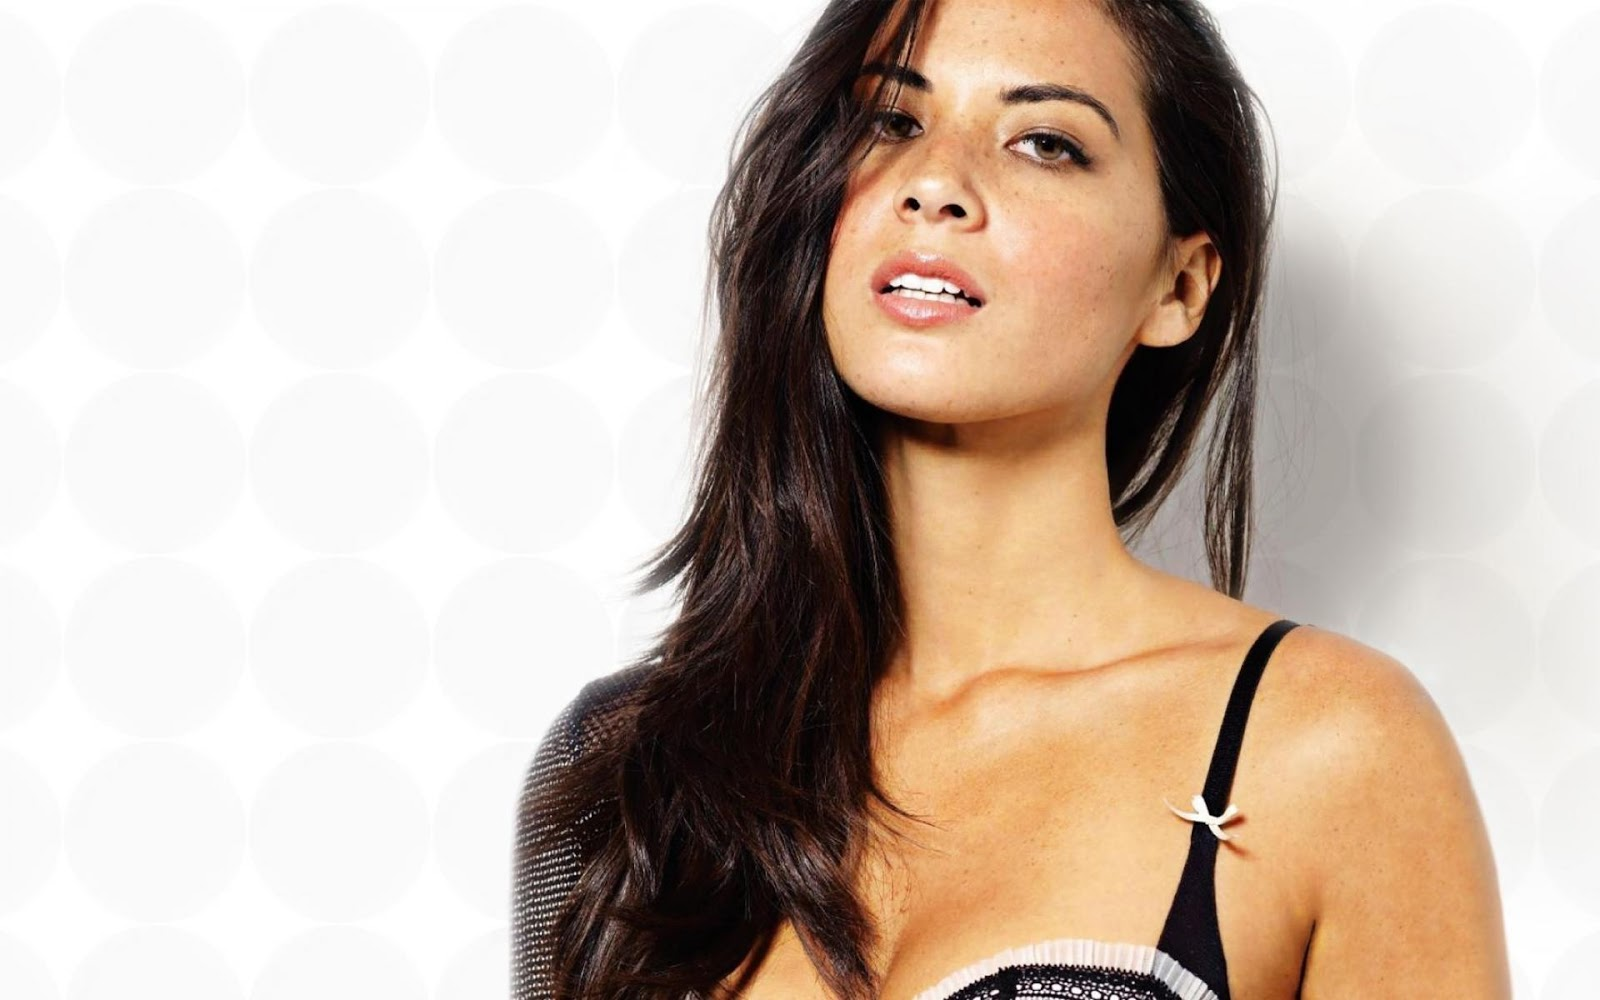 olivia munn30 1920x1080 wallpapers - photo #9